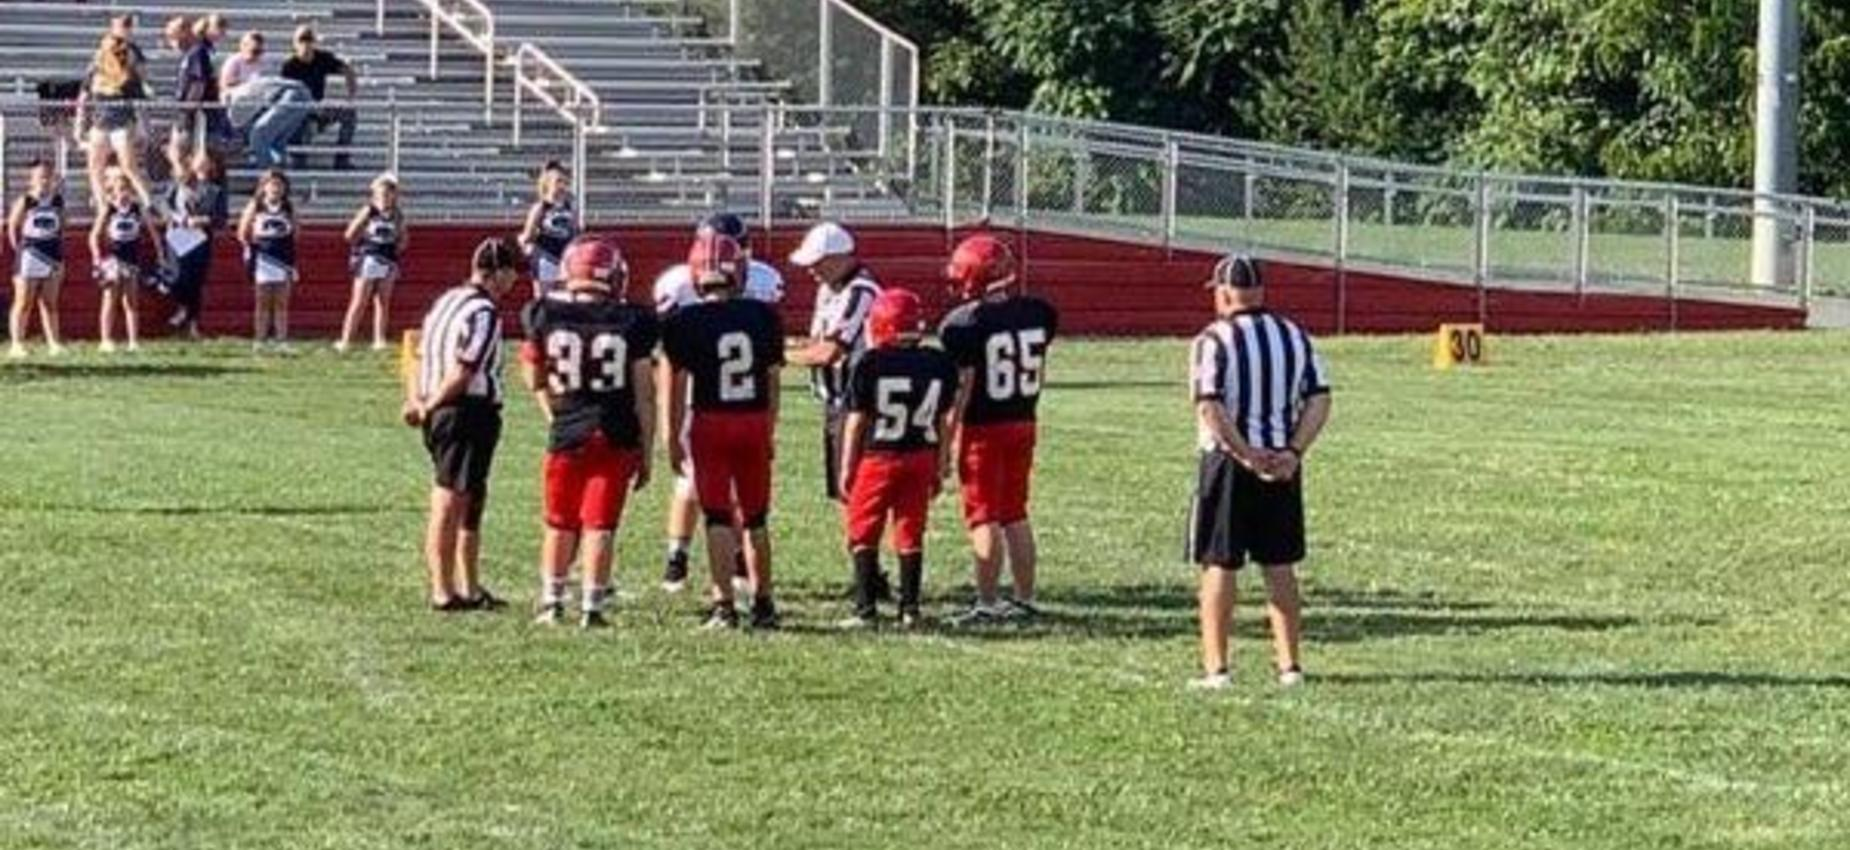 Football players meet with referees for a coin toss on a field.